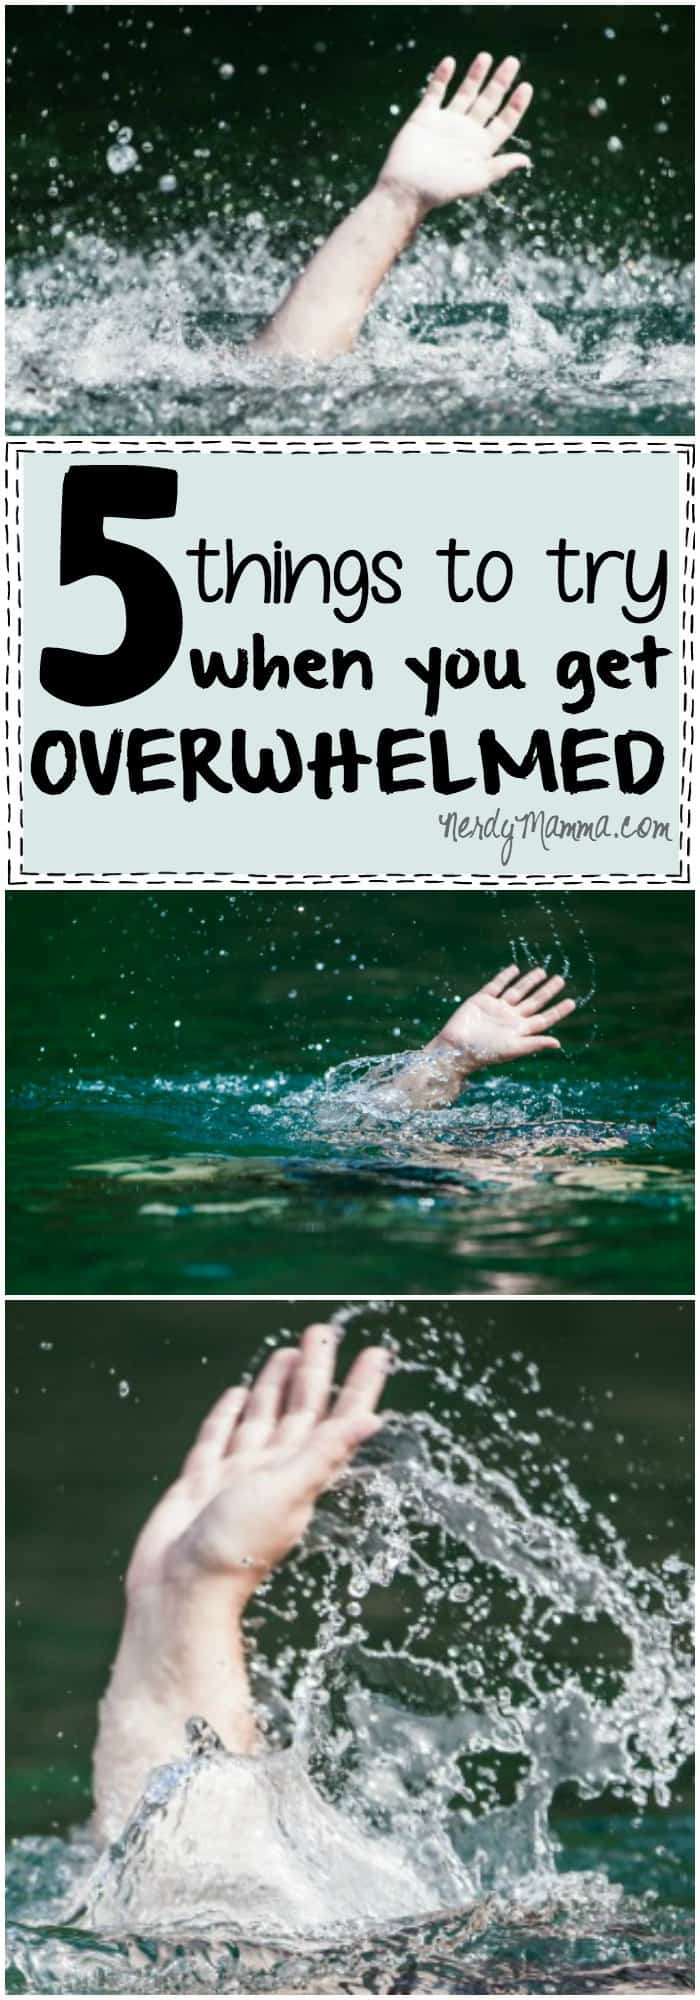 These 5 Things to Try When You Get Overwhelmed are so simple--but kind of brilliant. I will have to pin this for later!